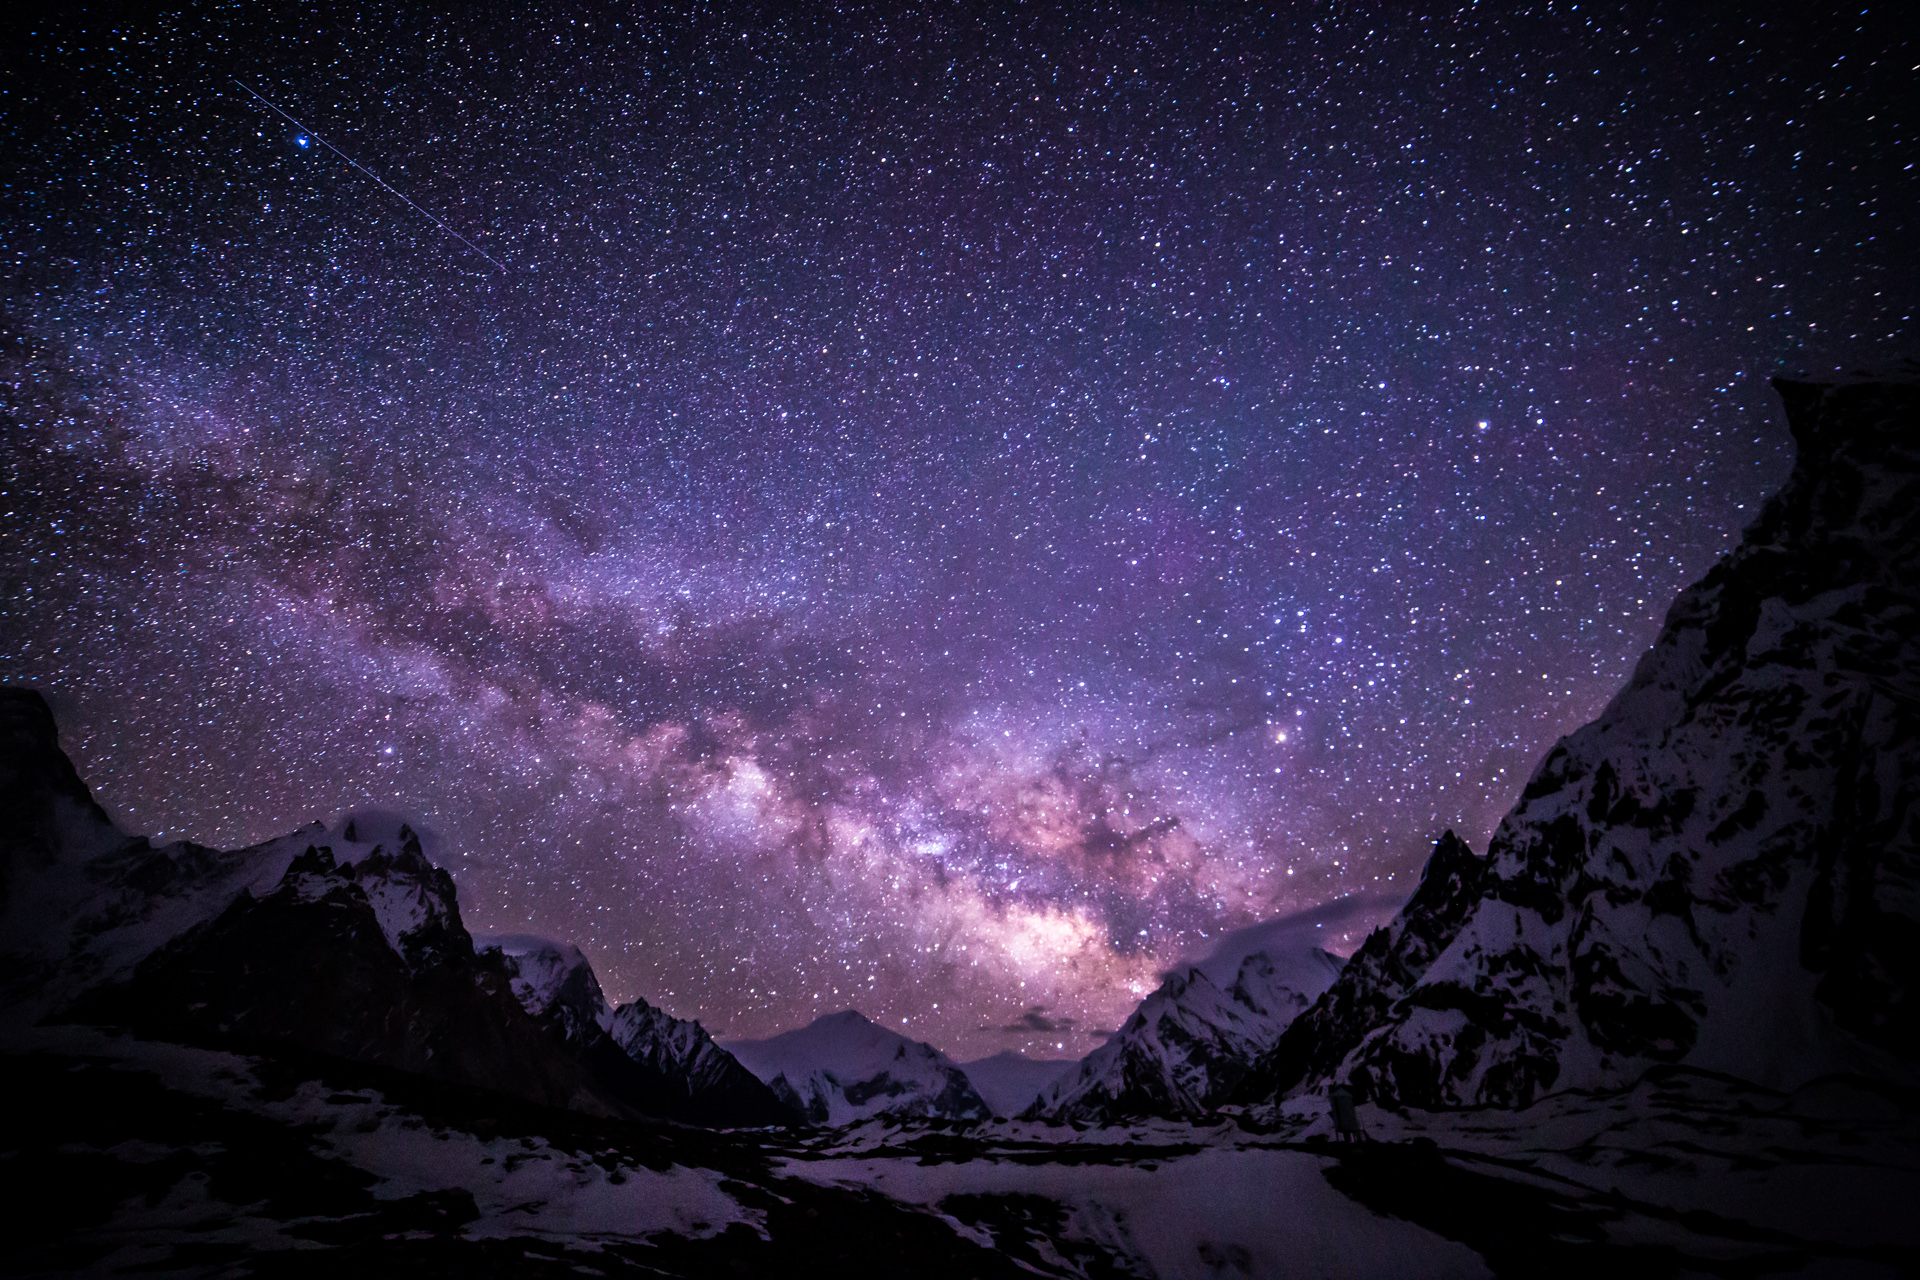 milky_way_at_concordia_camp_karakoram_range_pakistan